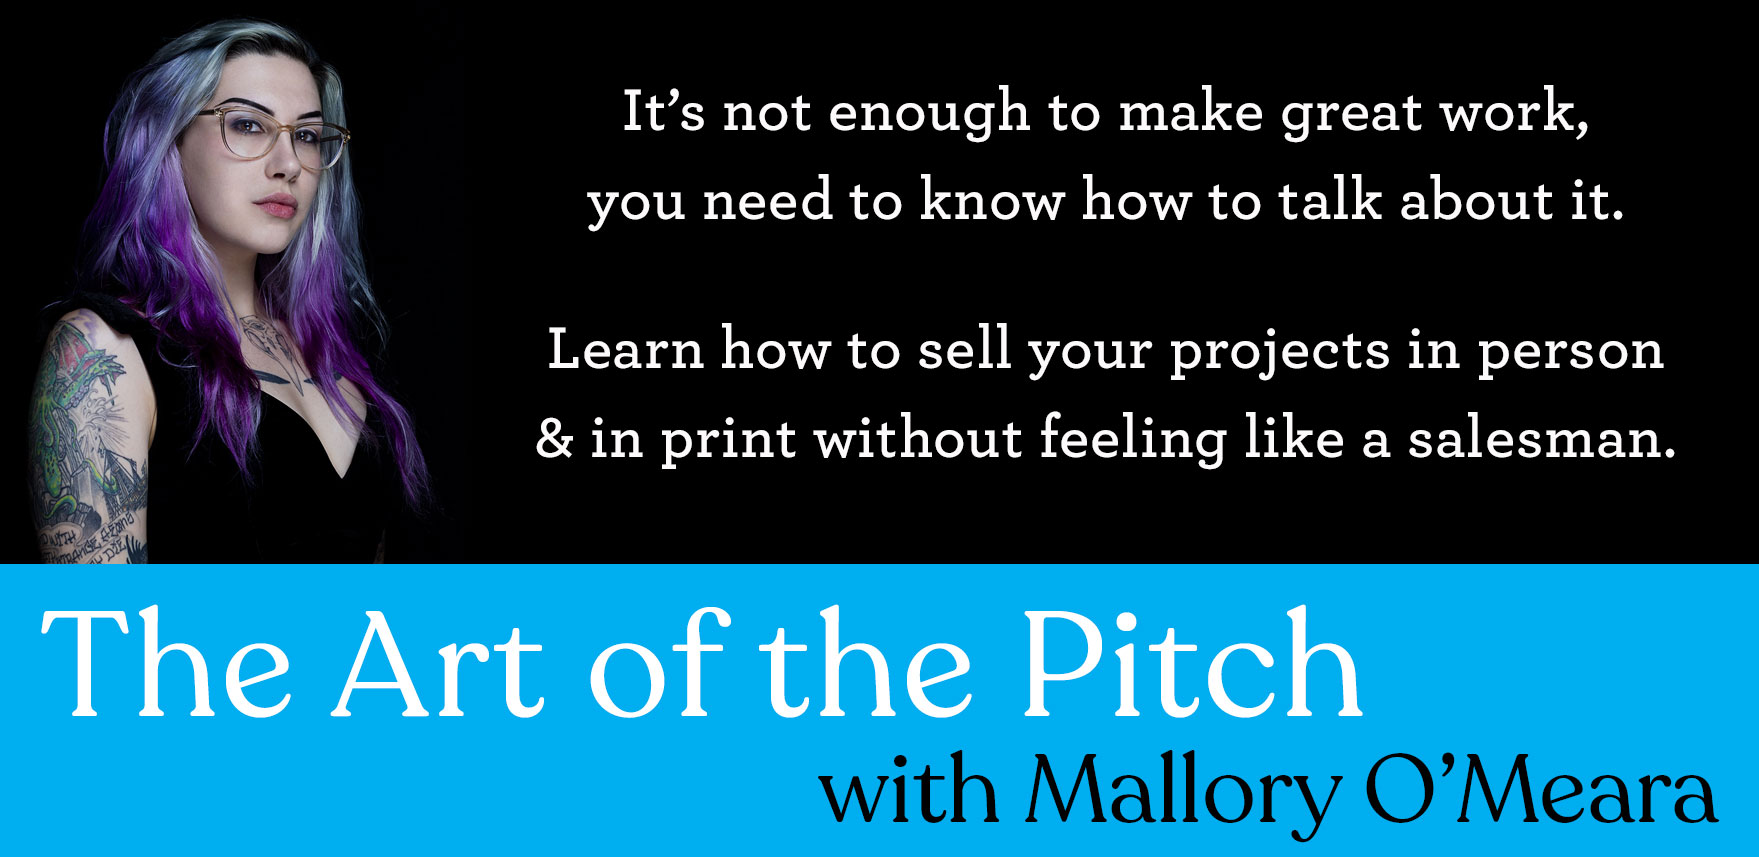 Art of the Pitch with Mallory O'Meara